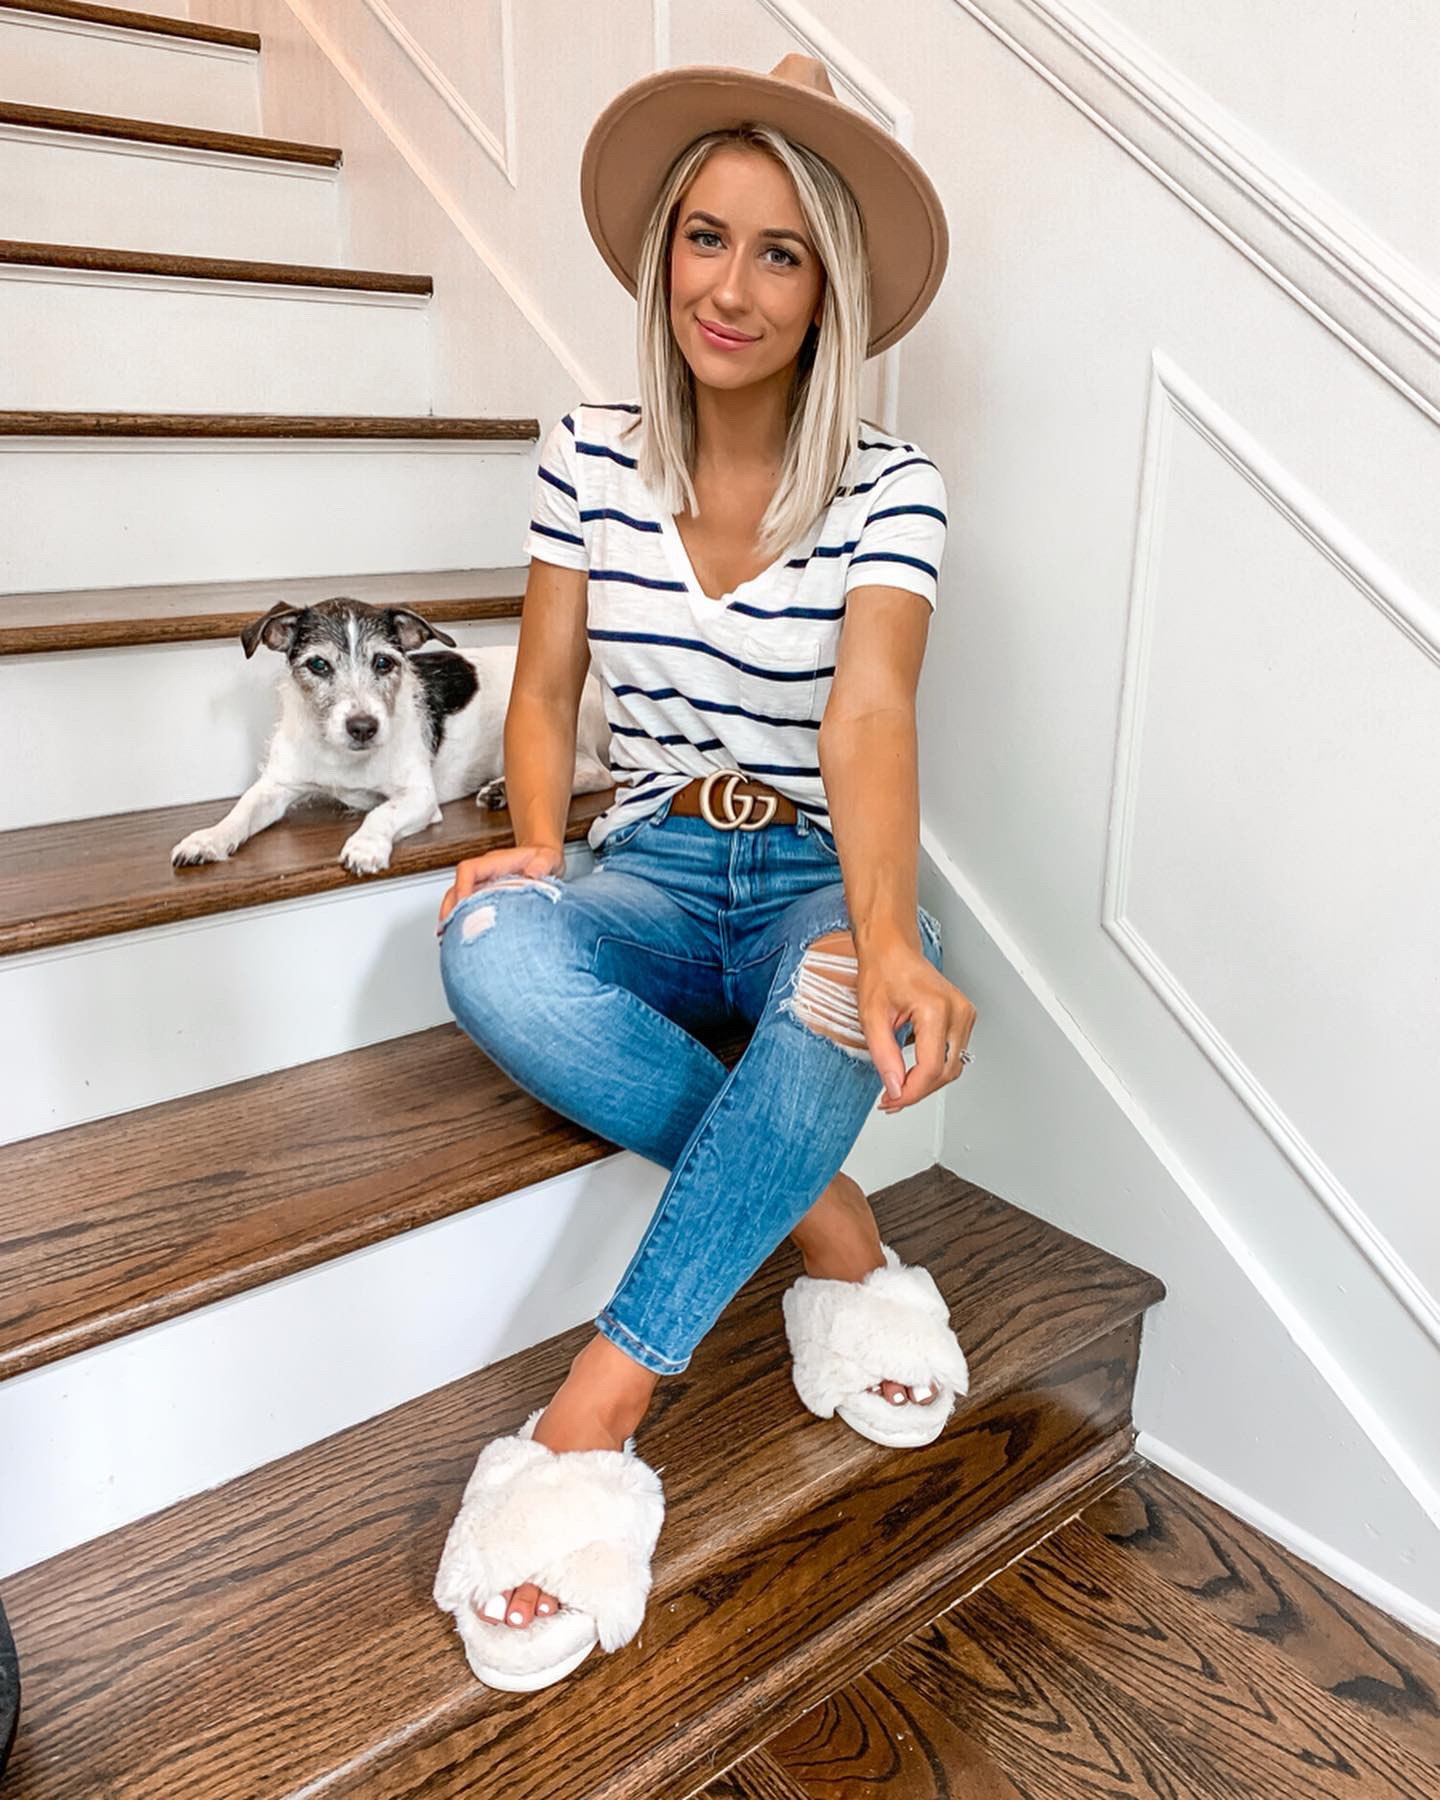 how to brighten under eyes comfy casual summer outfit laura beverlin nordstrom beauty trish mcevoy